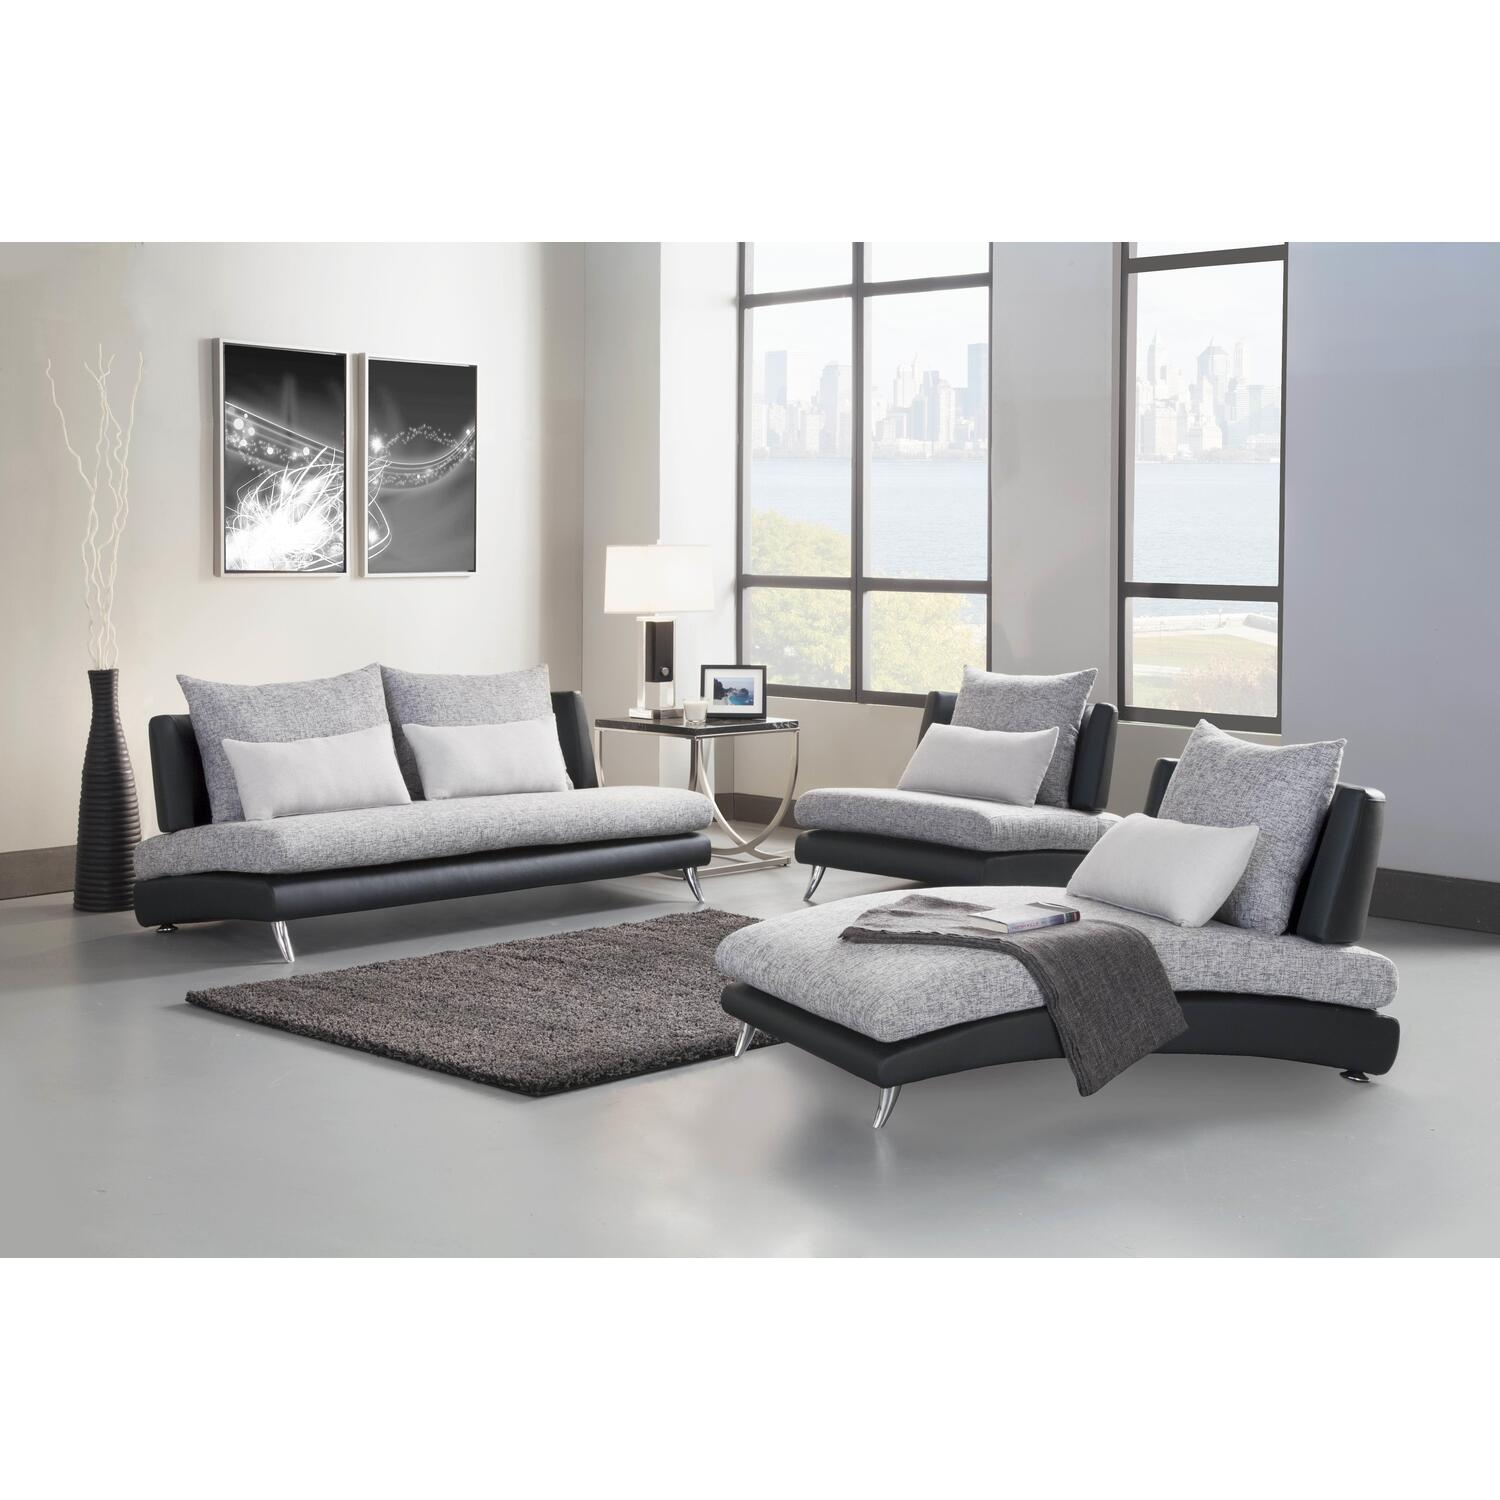 homelegance renton living room set by oj commerce 1 444